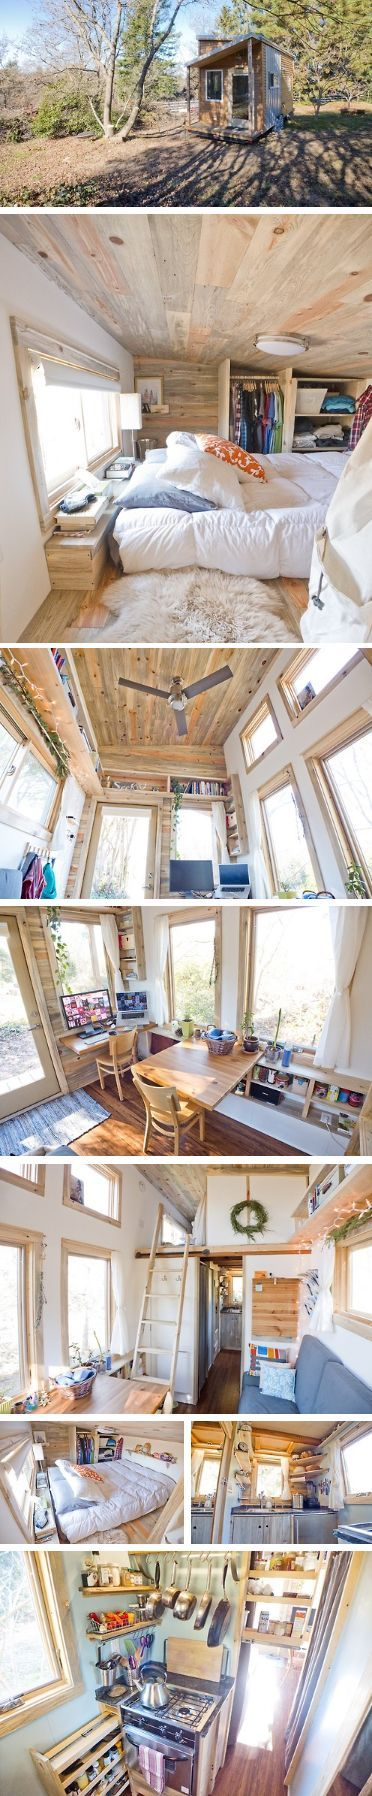 65 best cabane atelier images on Pinterest Small houses, Tiny